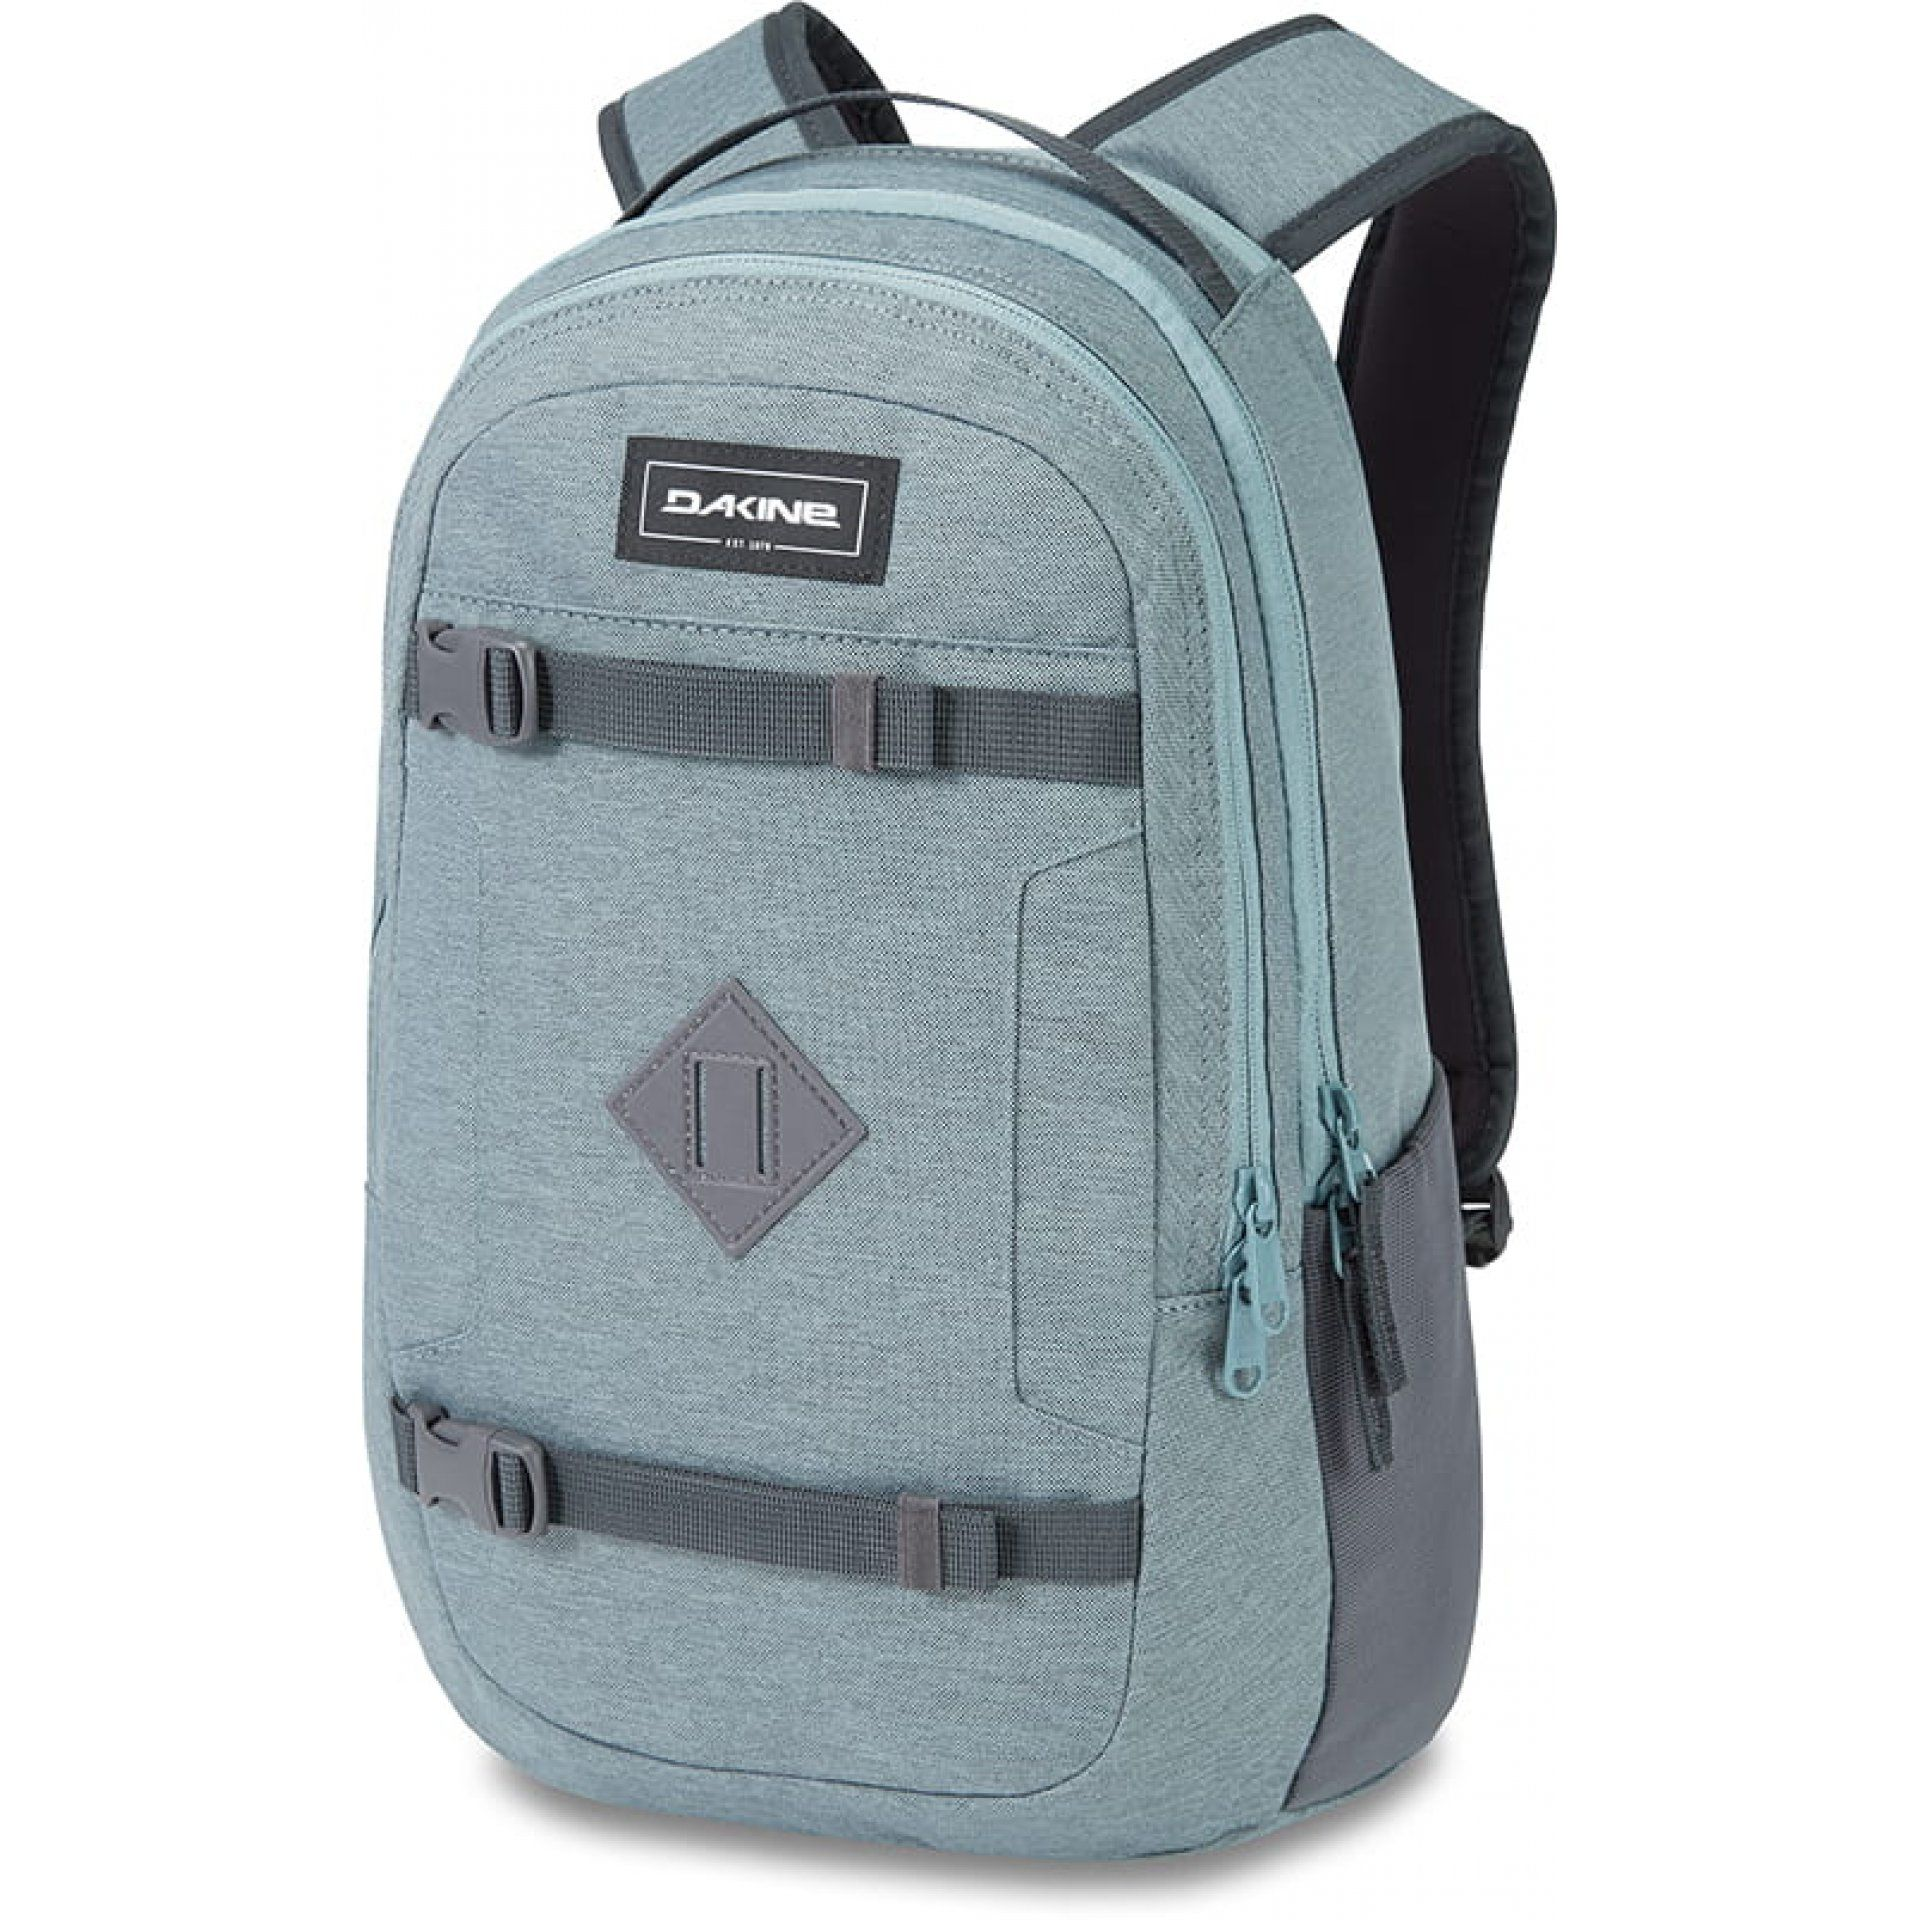 PLECAK DAKINE URBAN MISSION PACK 18L LEAD BLUE